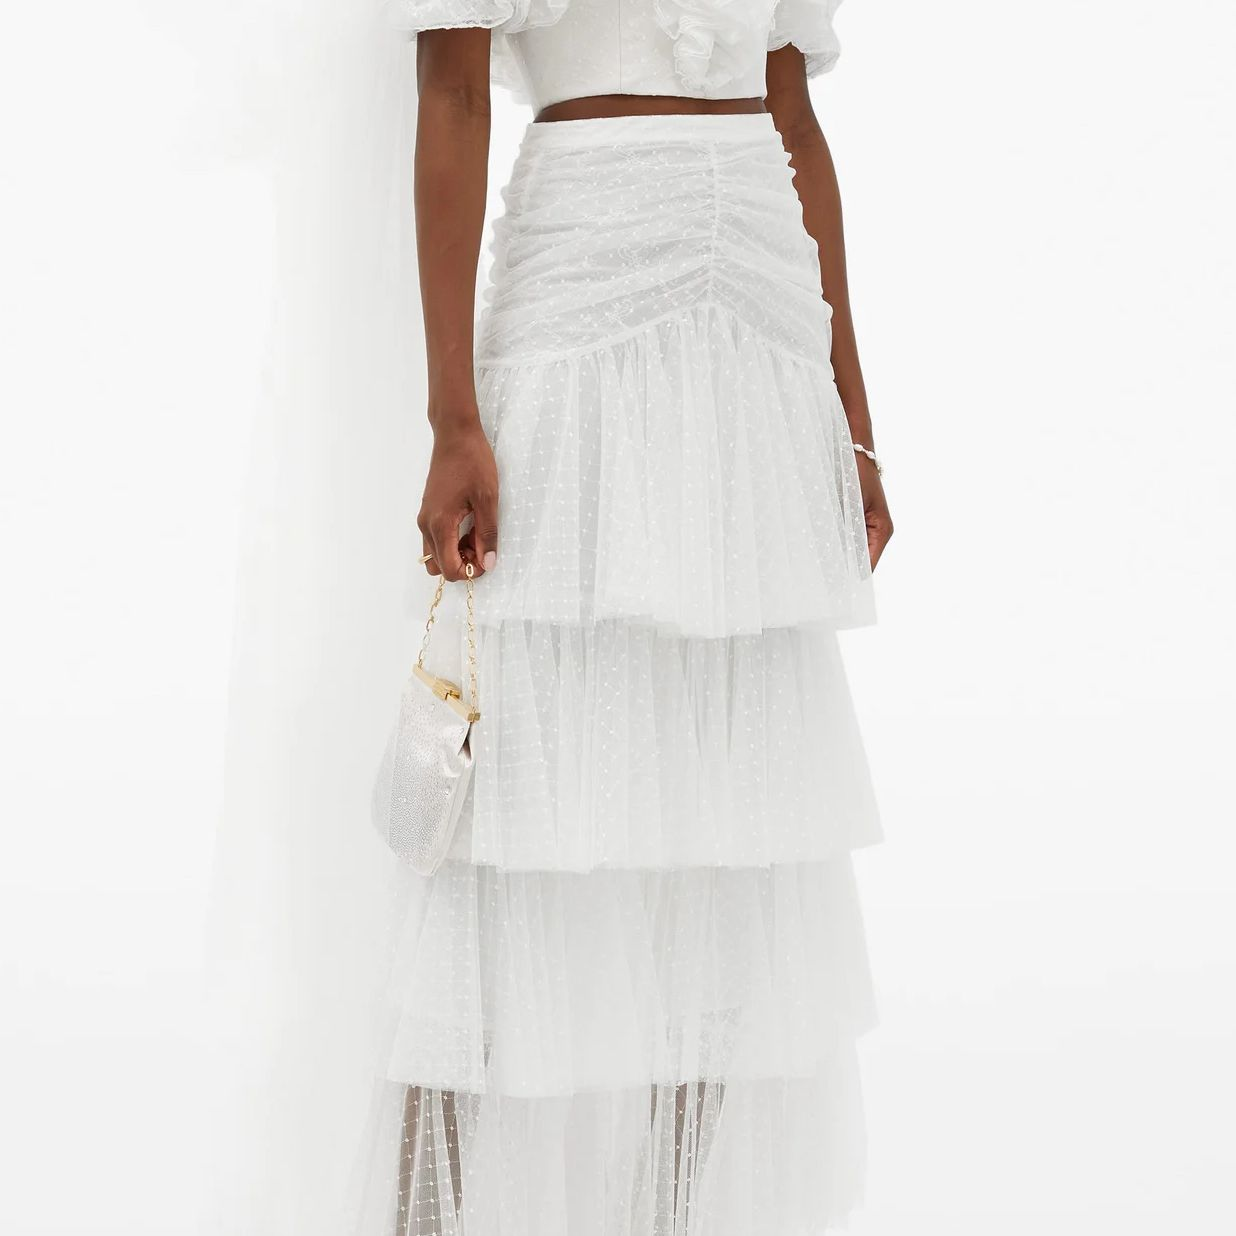 Ruffled Top and Tiered Tulle Skirt